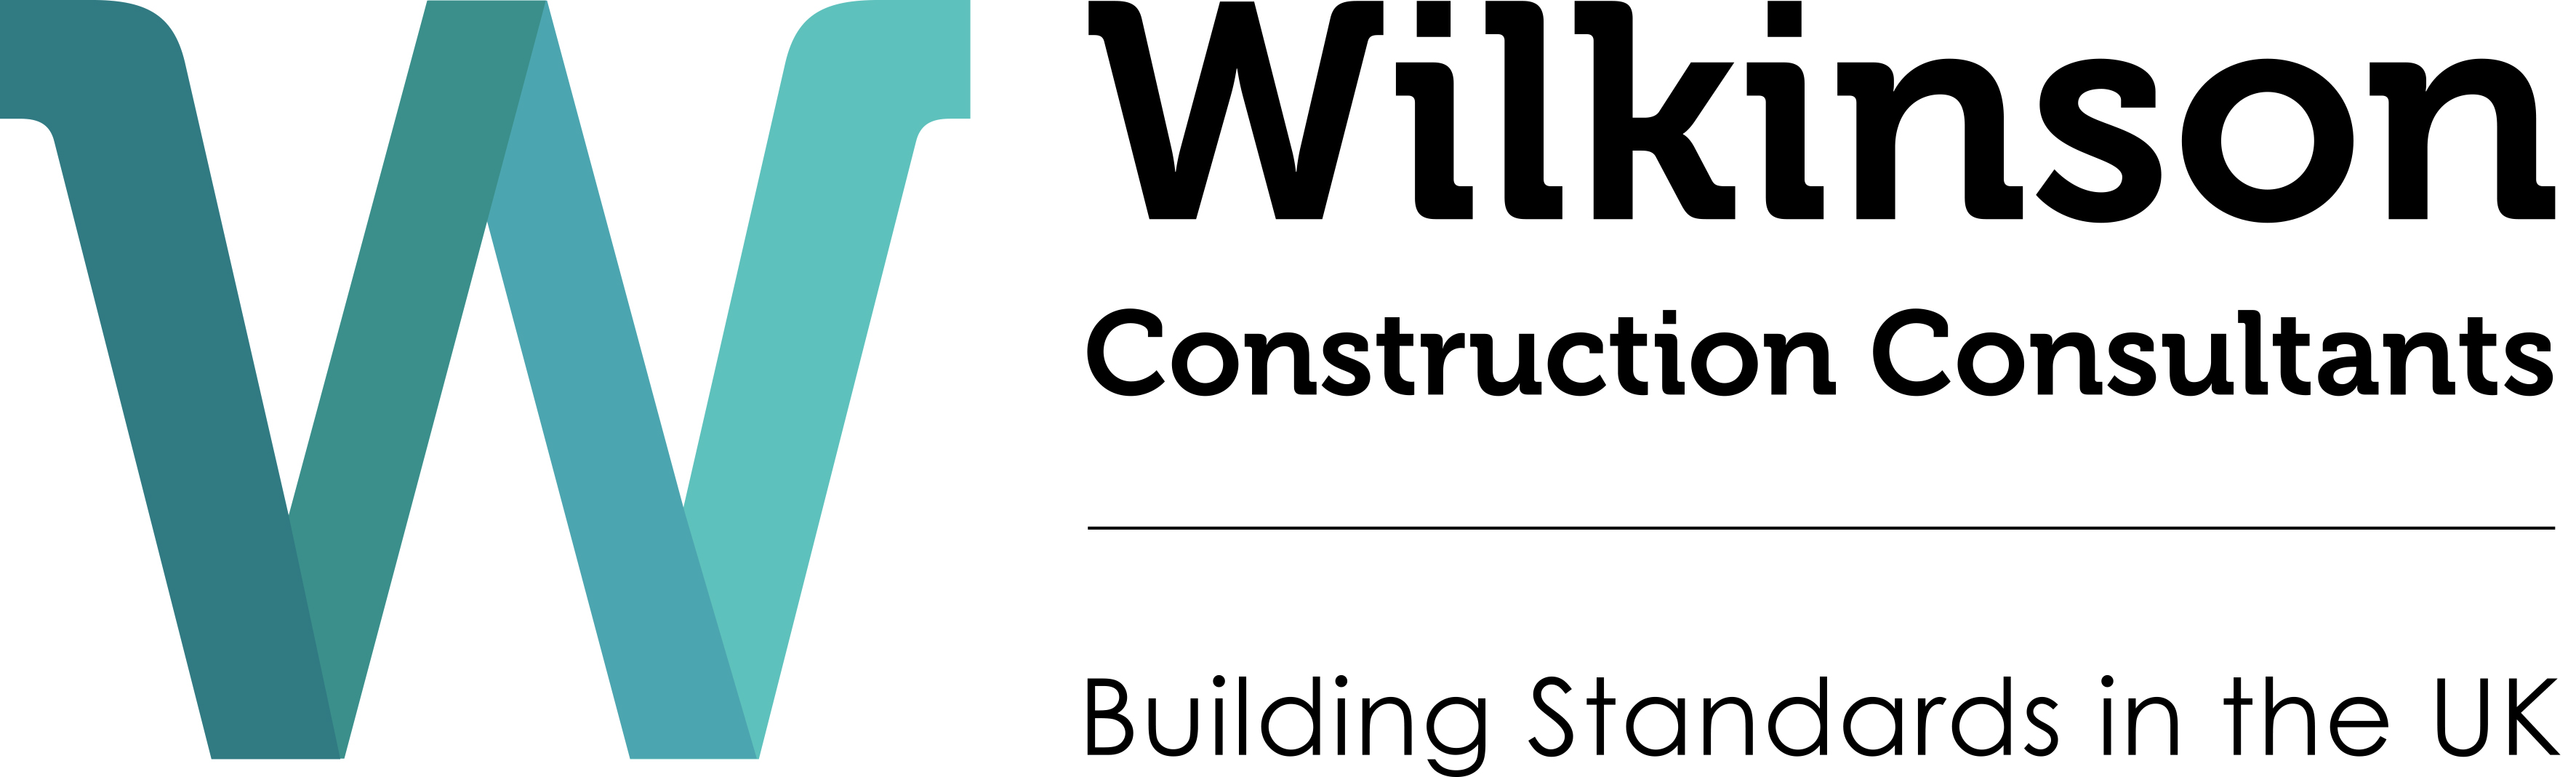 Wilkinson Construction Consultants | Construction Directory